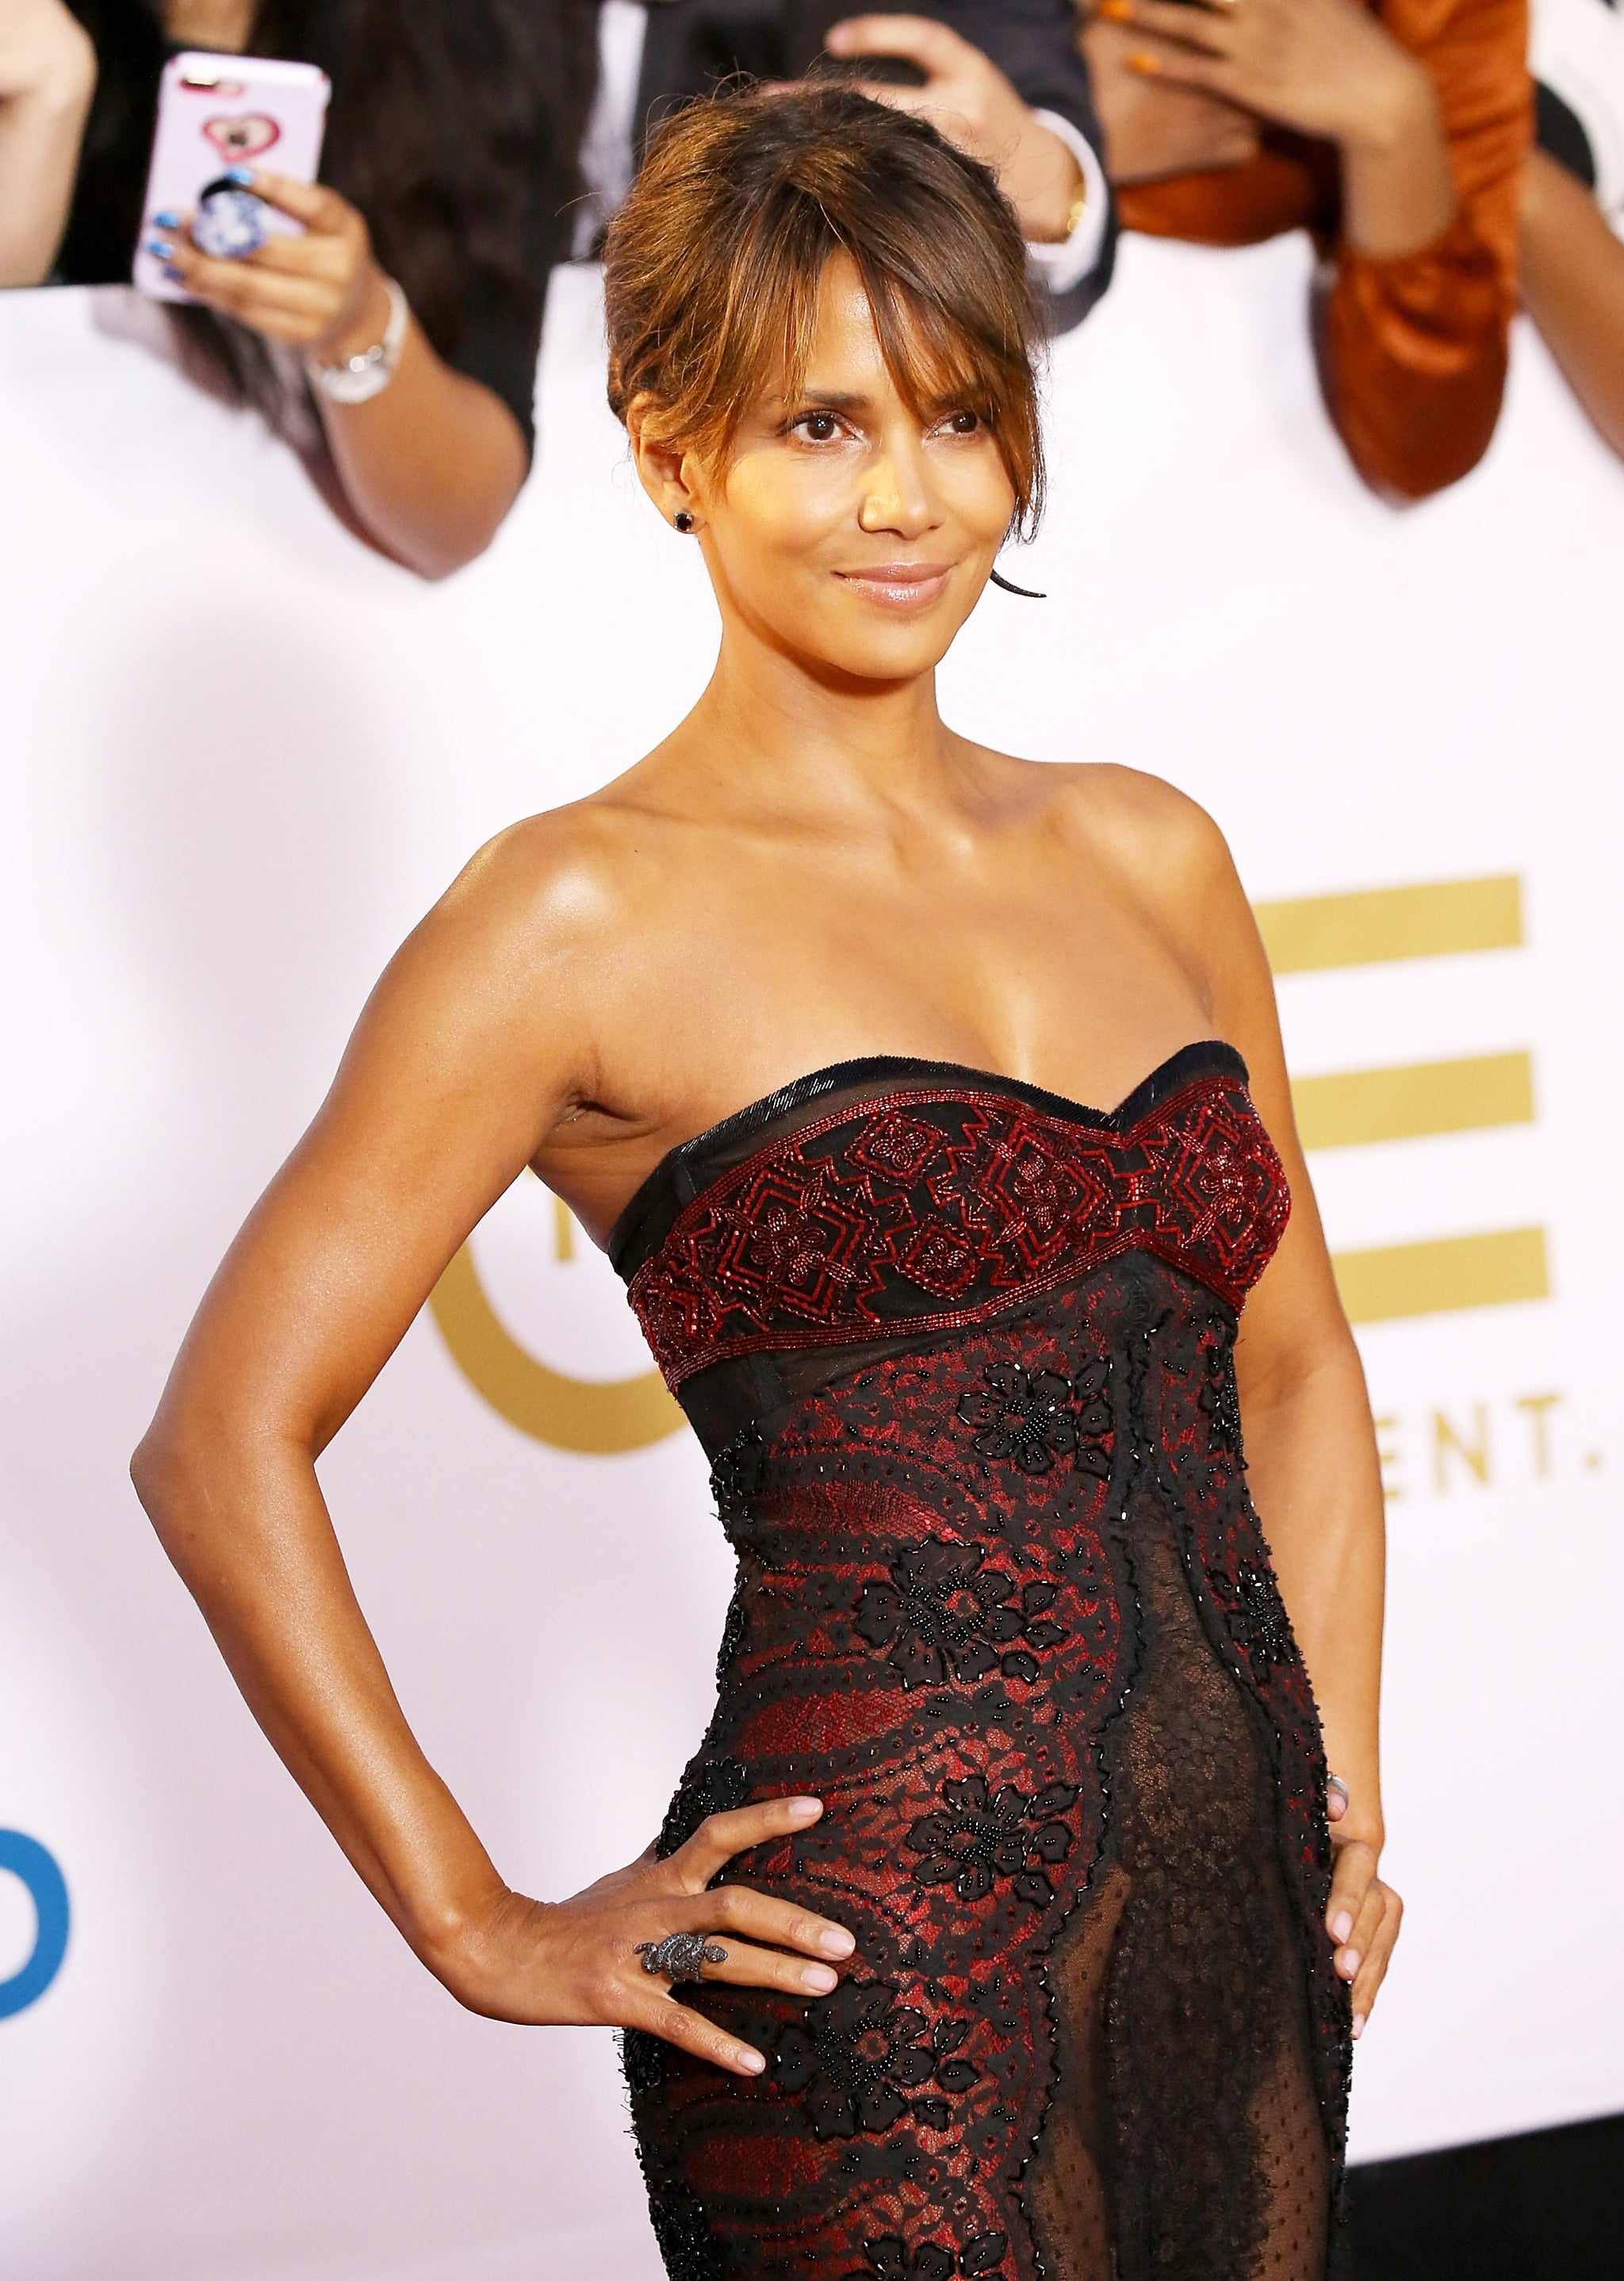 PASADENA, CA - JANUARY 15:  Halle Berry arrives to the 49th NAACP Image Awards held at Pasadena Civic Auditorium on January 15, 2018 in Pasadena, California.  (Photo by Michael Tran/FilmMagic)